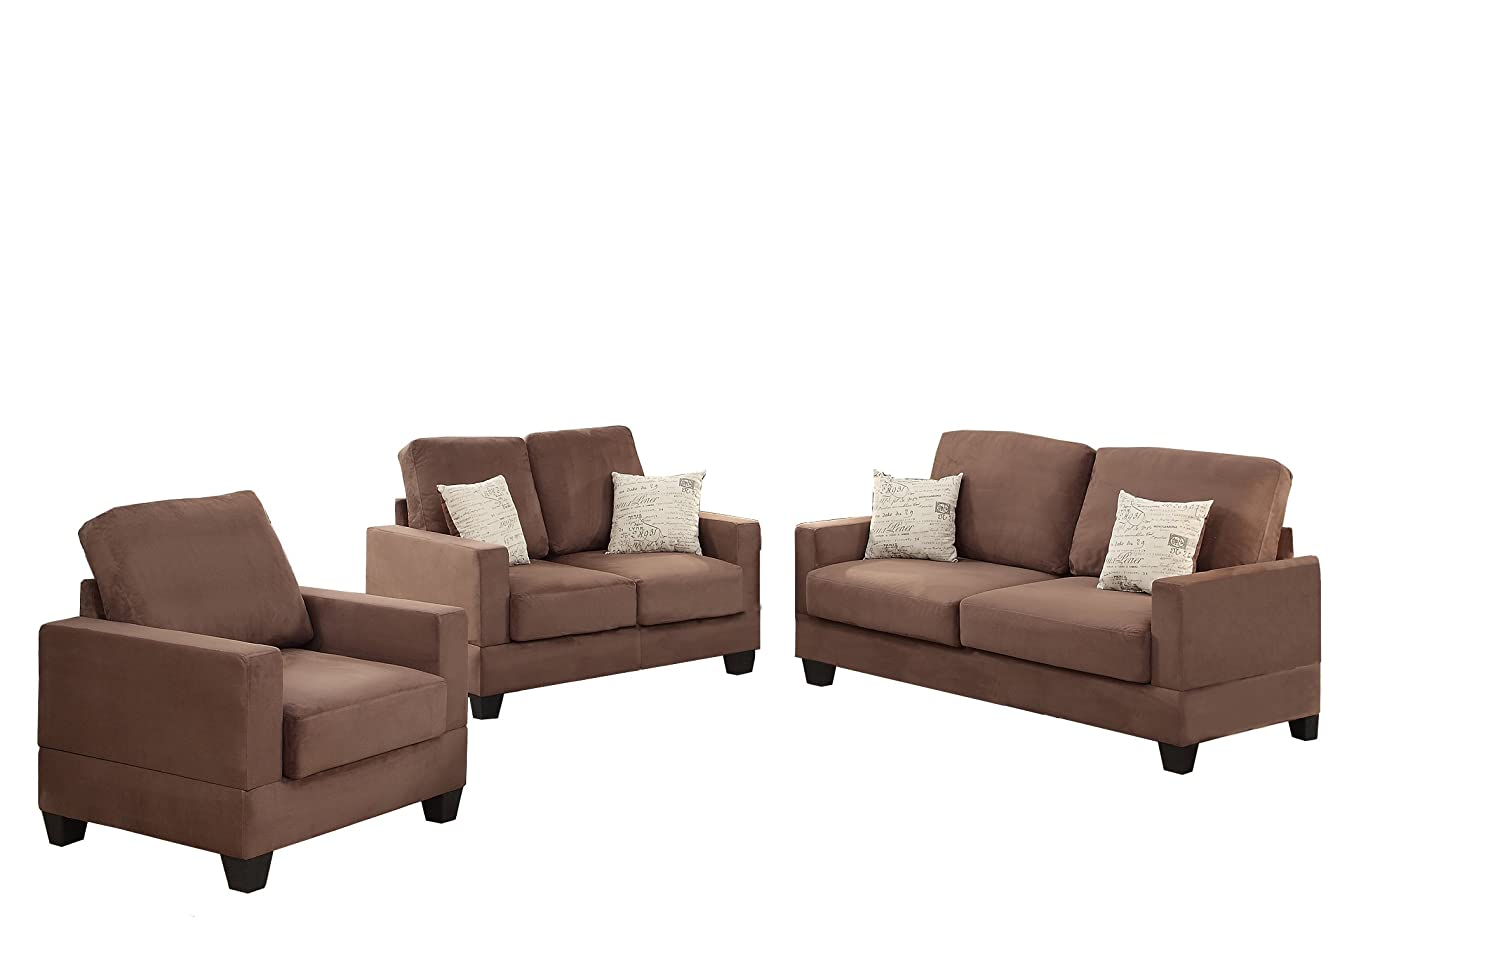 Poundex Bobkona Madison Microsuede 3 Piece Sofa and Loveseat with Chair Set - Peat